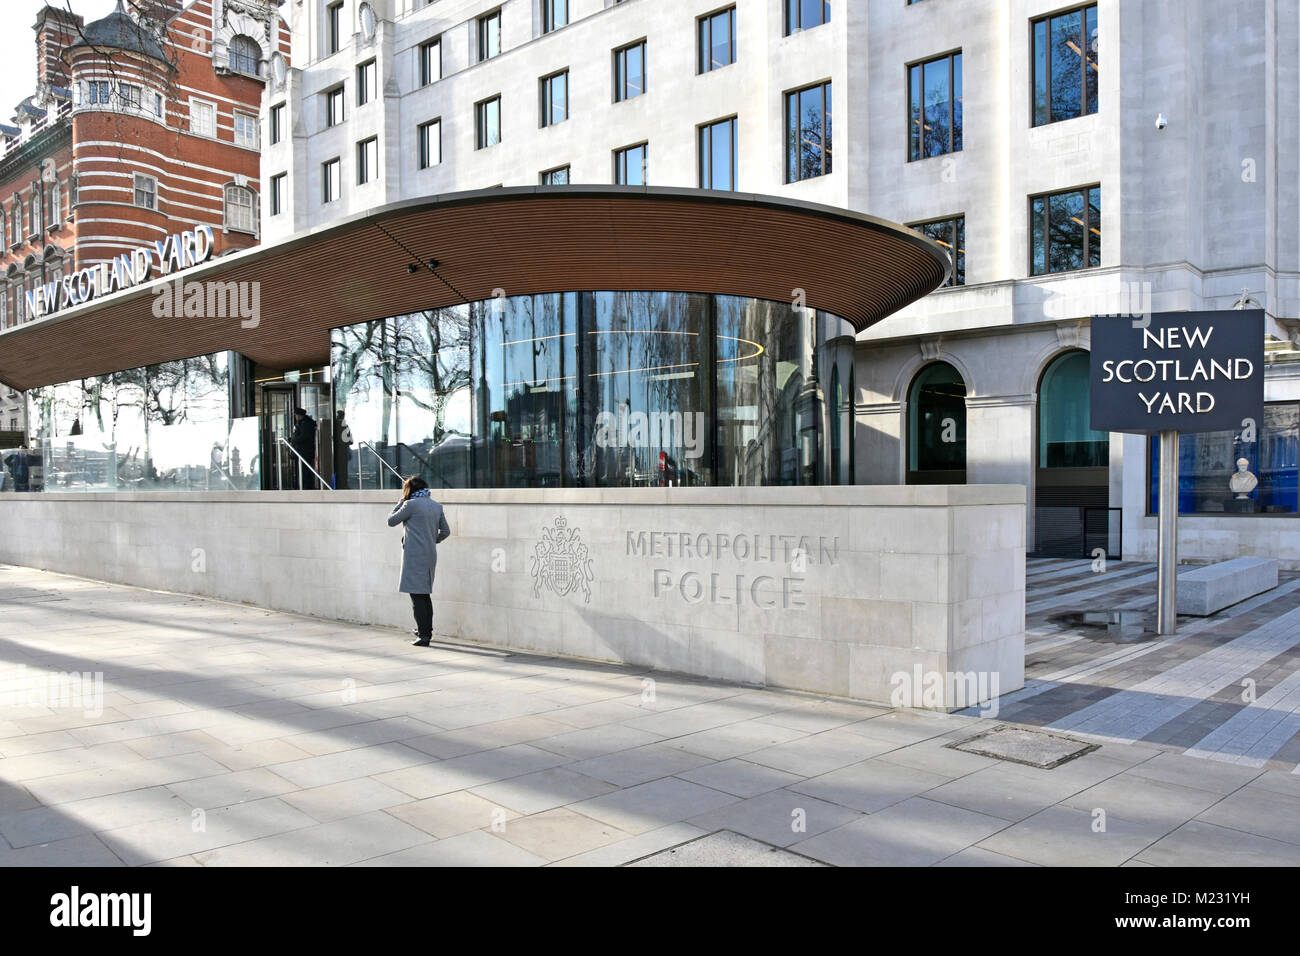 New Scotland Yard   relocated Metropolitan Police headquarters in old Curtis Green Building now refurbished & - Stock Image